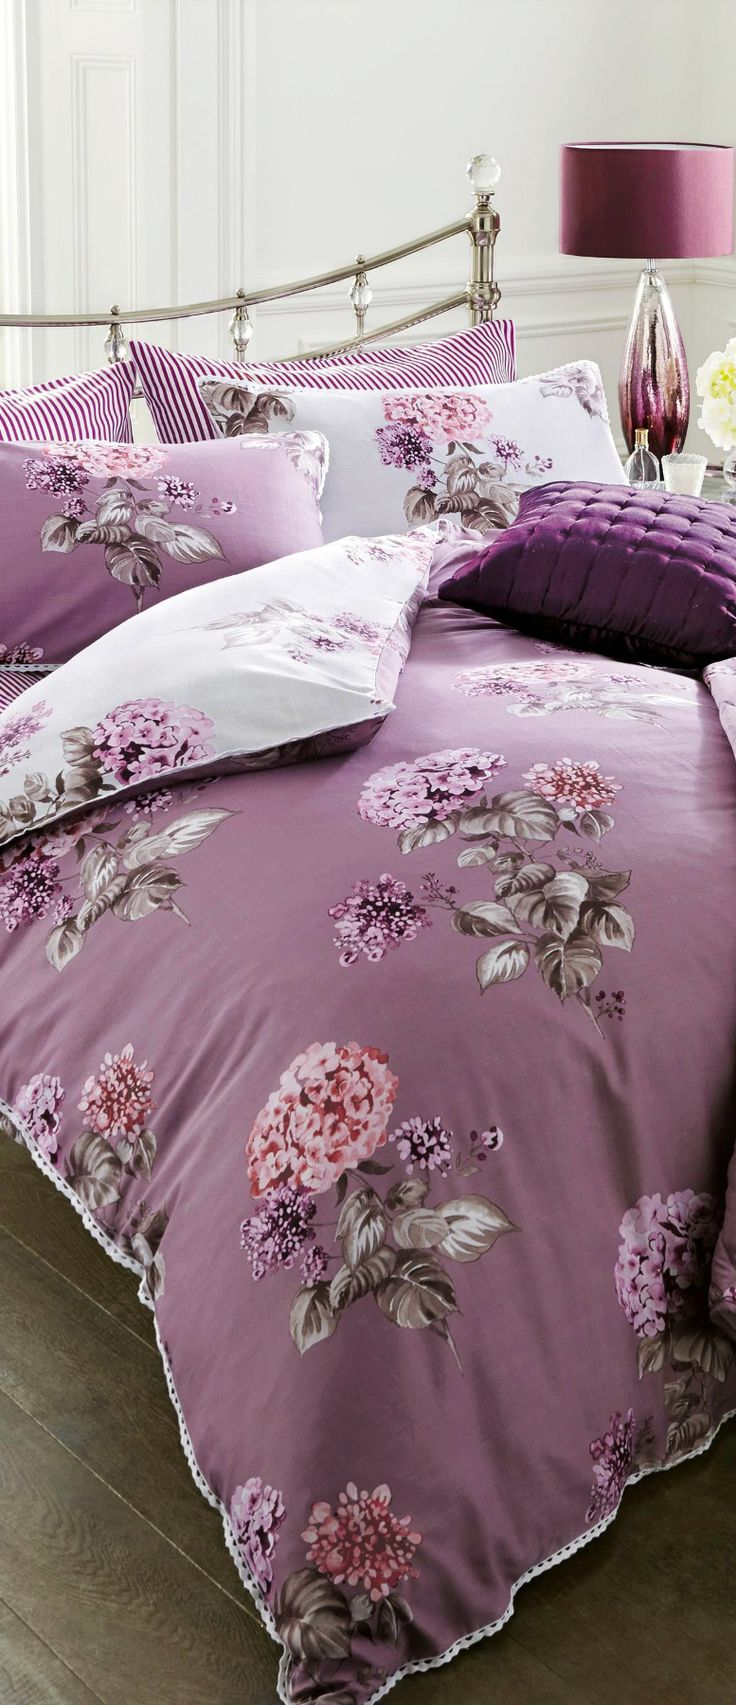 Plum and green bedding -  Such Pretty Floral Fabric Lavender Bedding Purple